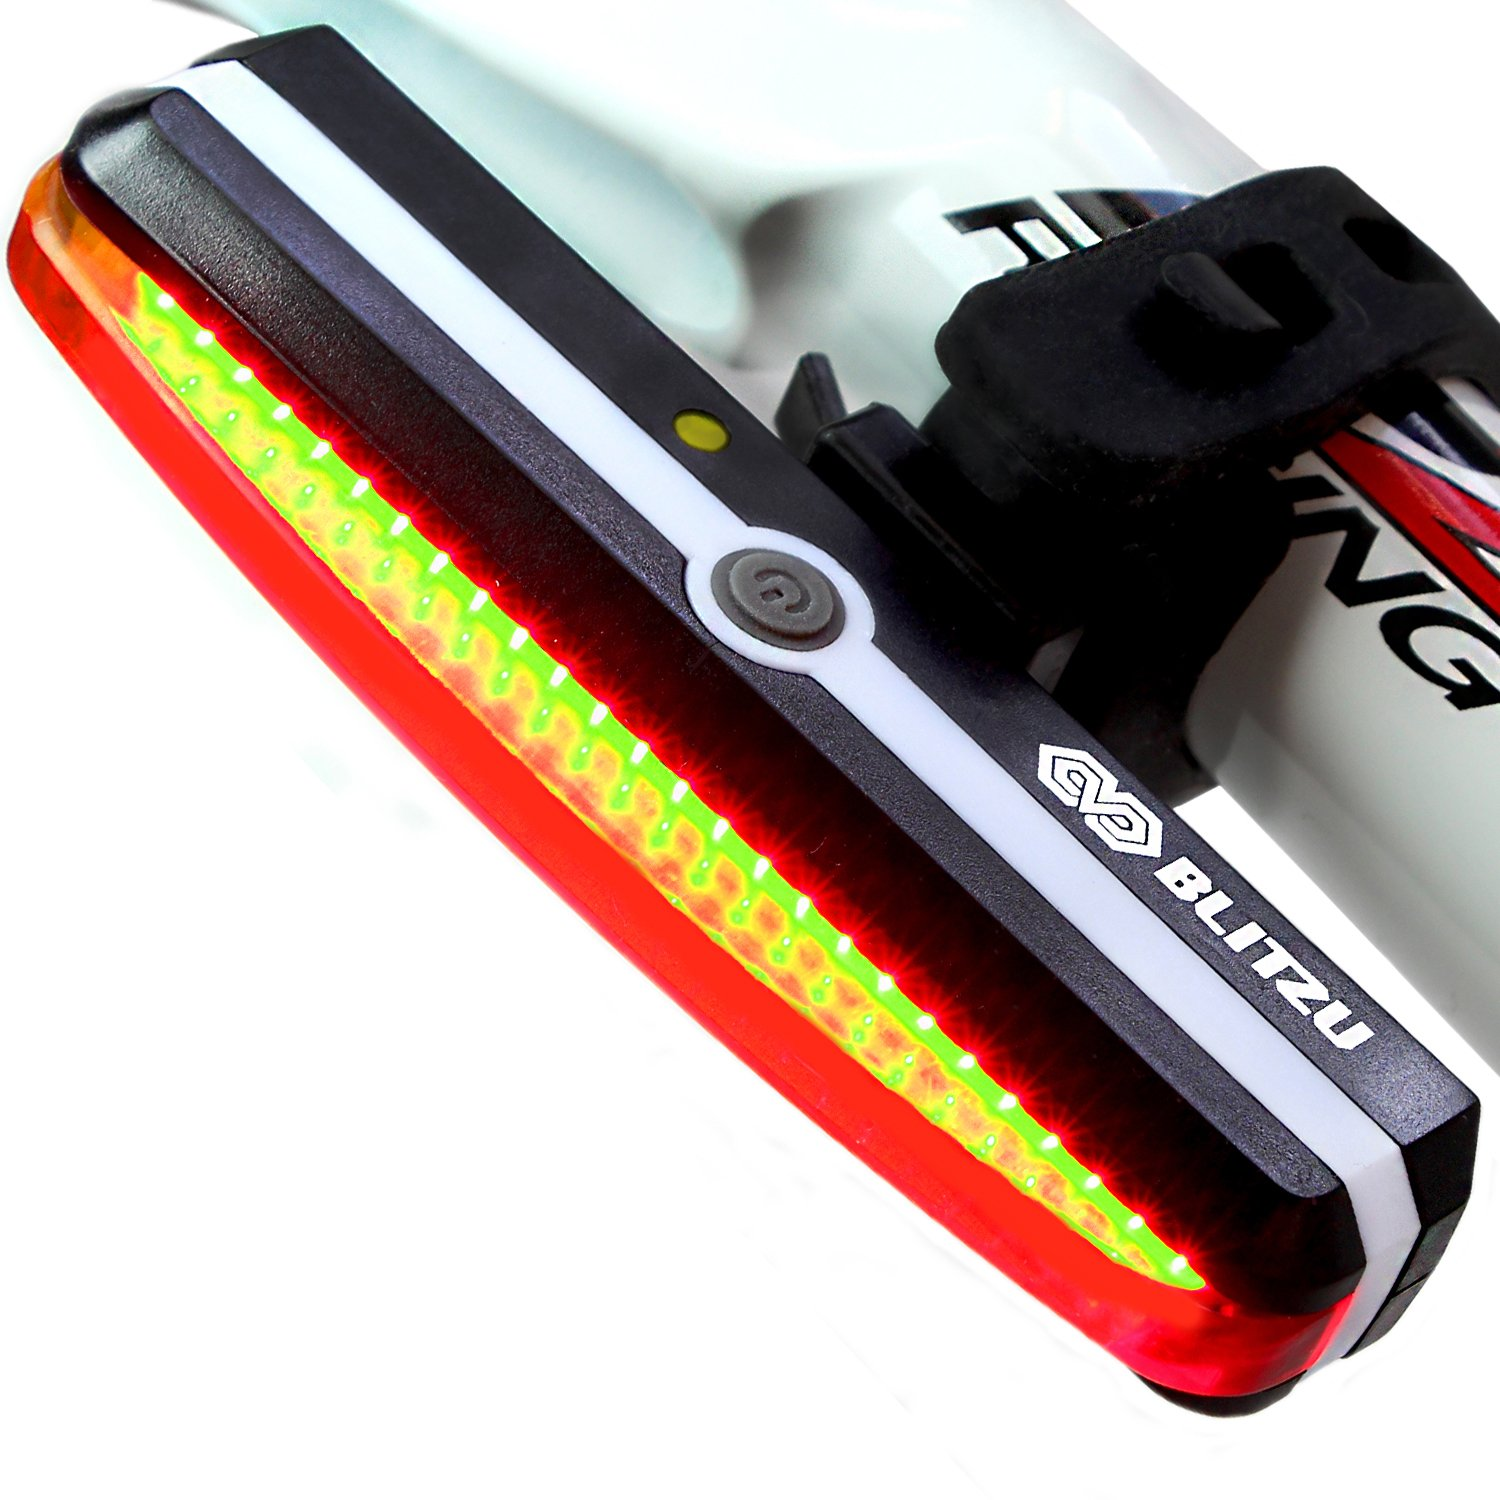 Ultra Bright Bike Light Blitzu Cyborg 168T USB Rechargeable Bicycle Tail Light. Red High Intensity Rear LED Accessories Fits On Any Road Bikes, Helmets. Easy To Install for Cycling Safety Flashlight by BLITZU